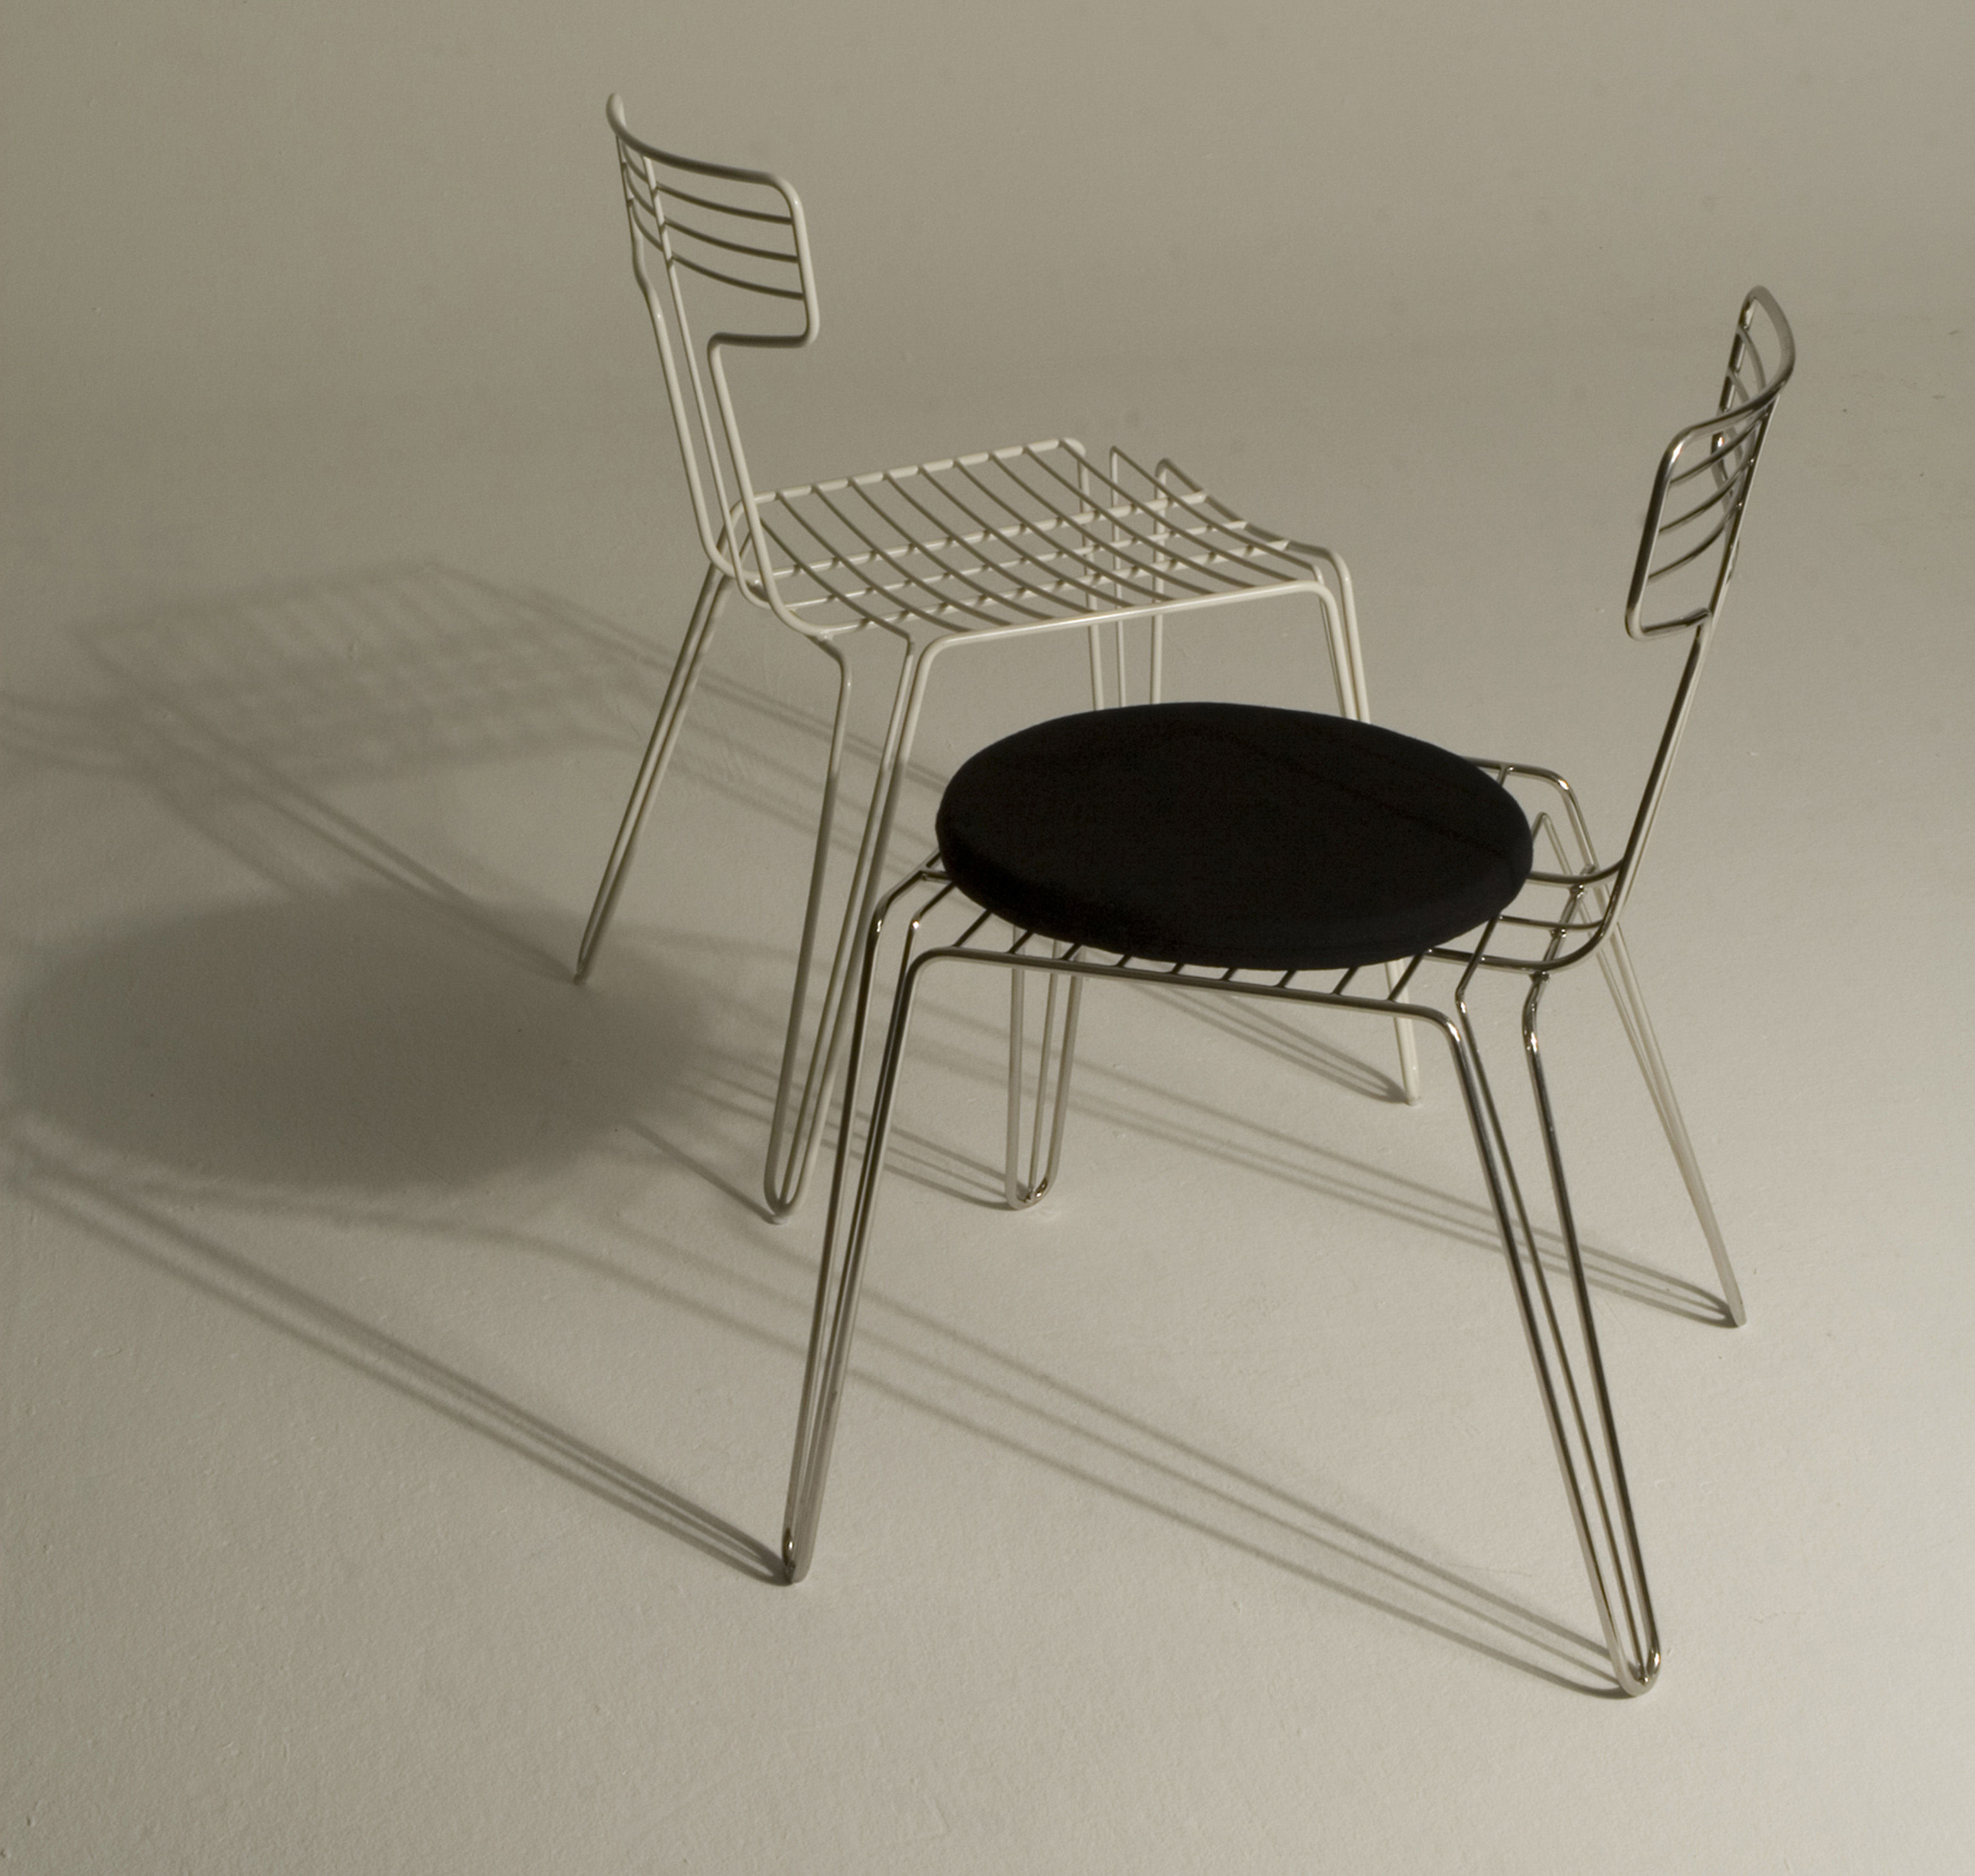 Furniture chairs wire chair metal seat cushion by tom dixon white